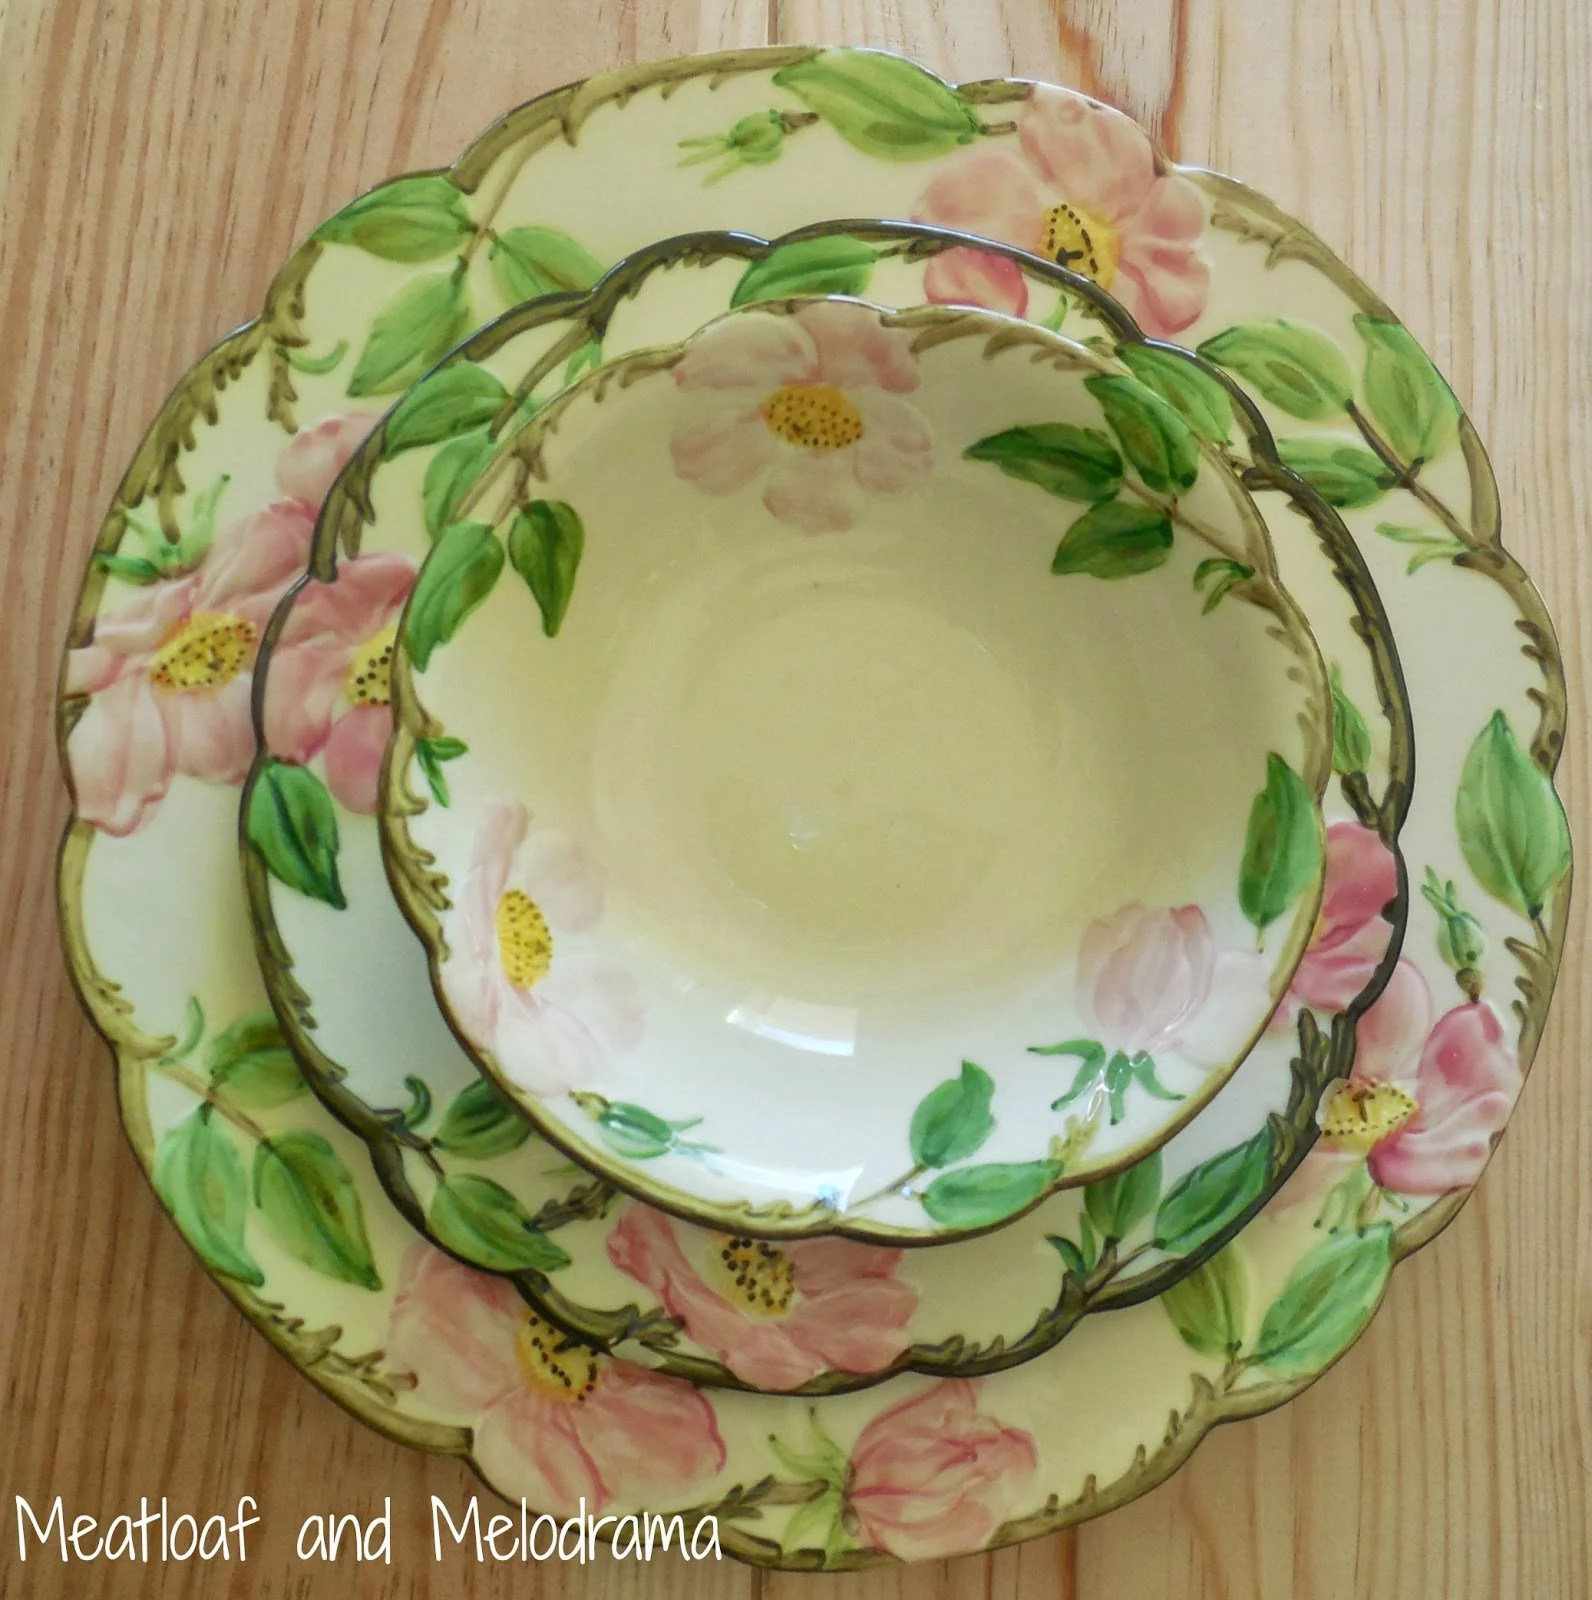 Sunshiny Sugar Franciscan Desert Rose Value Vintage Desert Rose Plates Set Vintage Franciscan Ware Meatloaf Melodrama Franciscan Desert Rose Creamer houzz-03 Franciscan Desert Rose